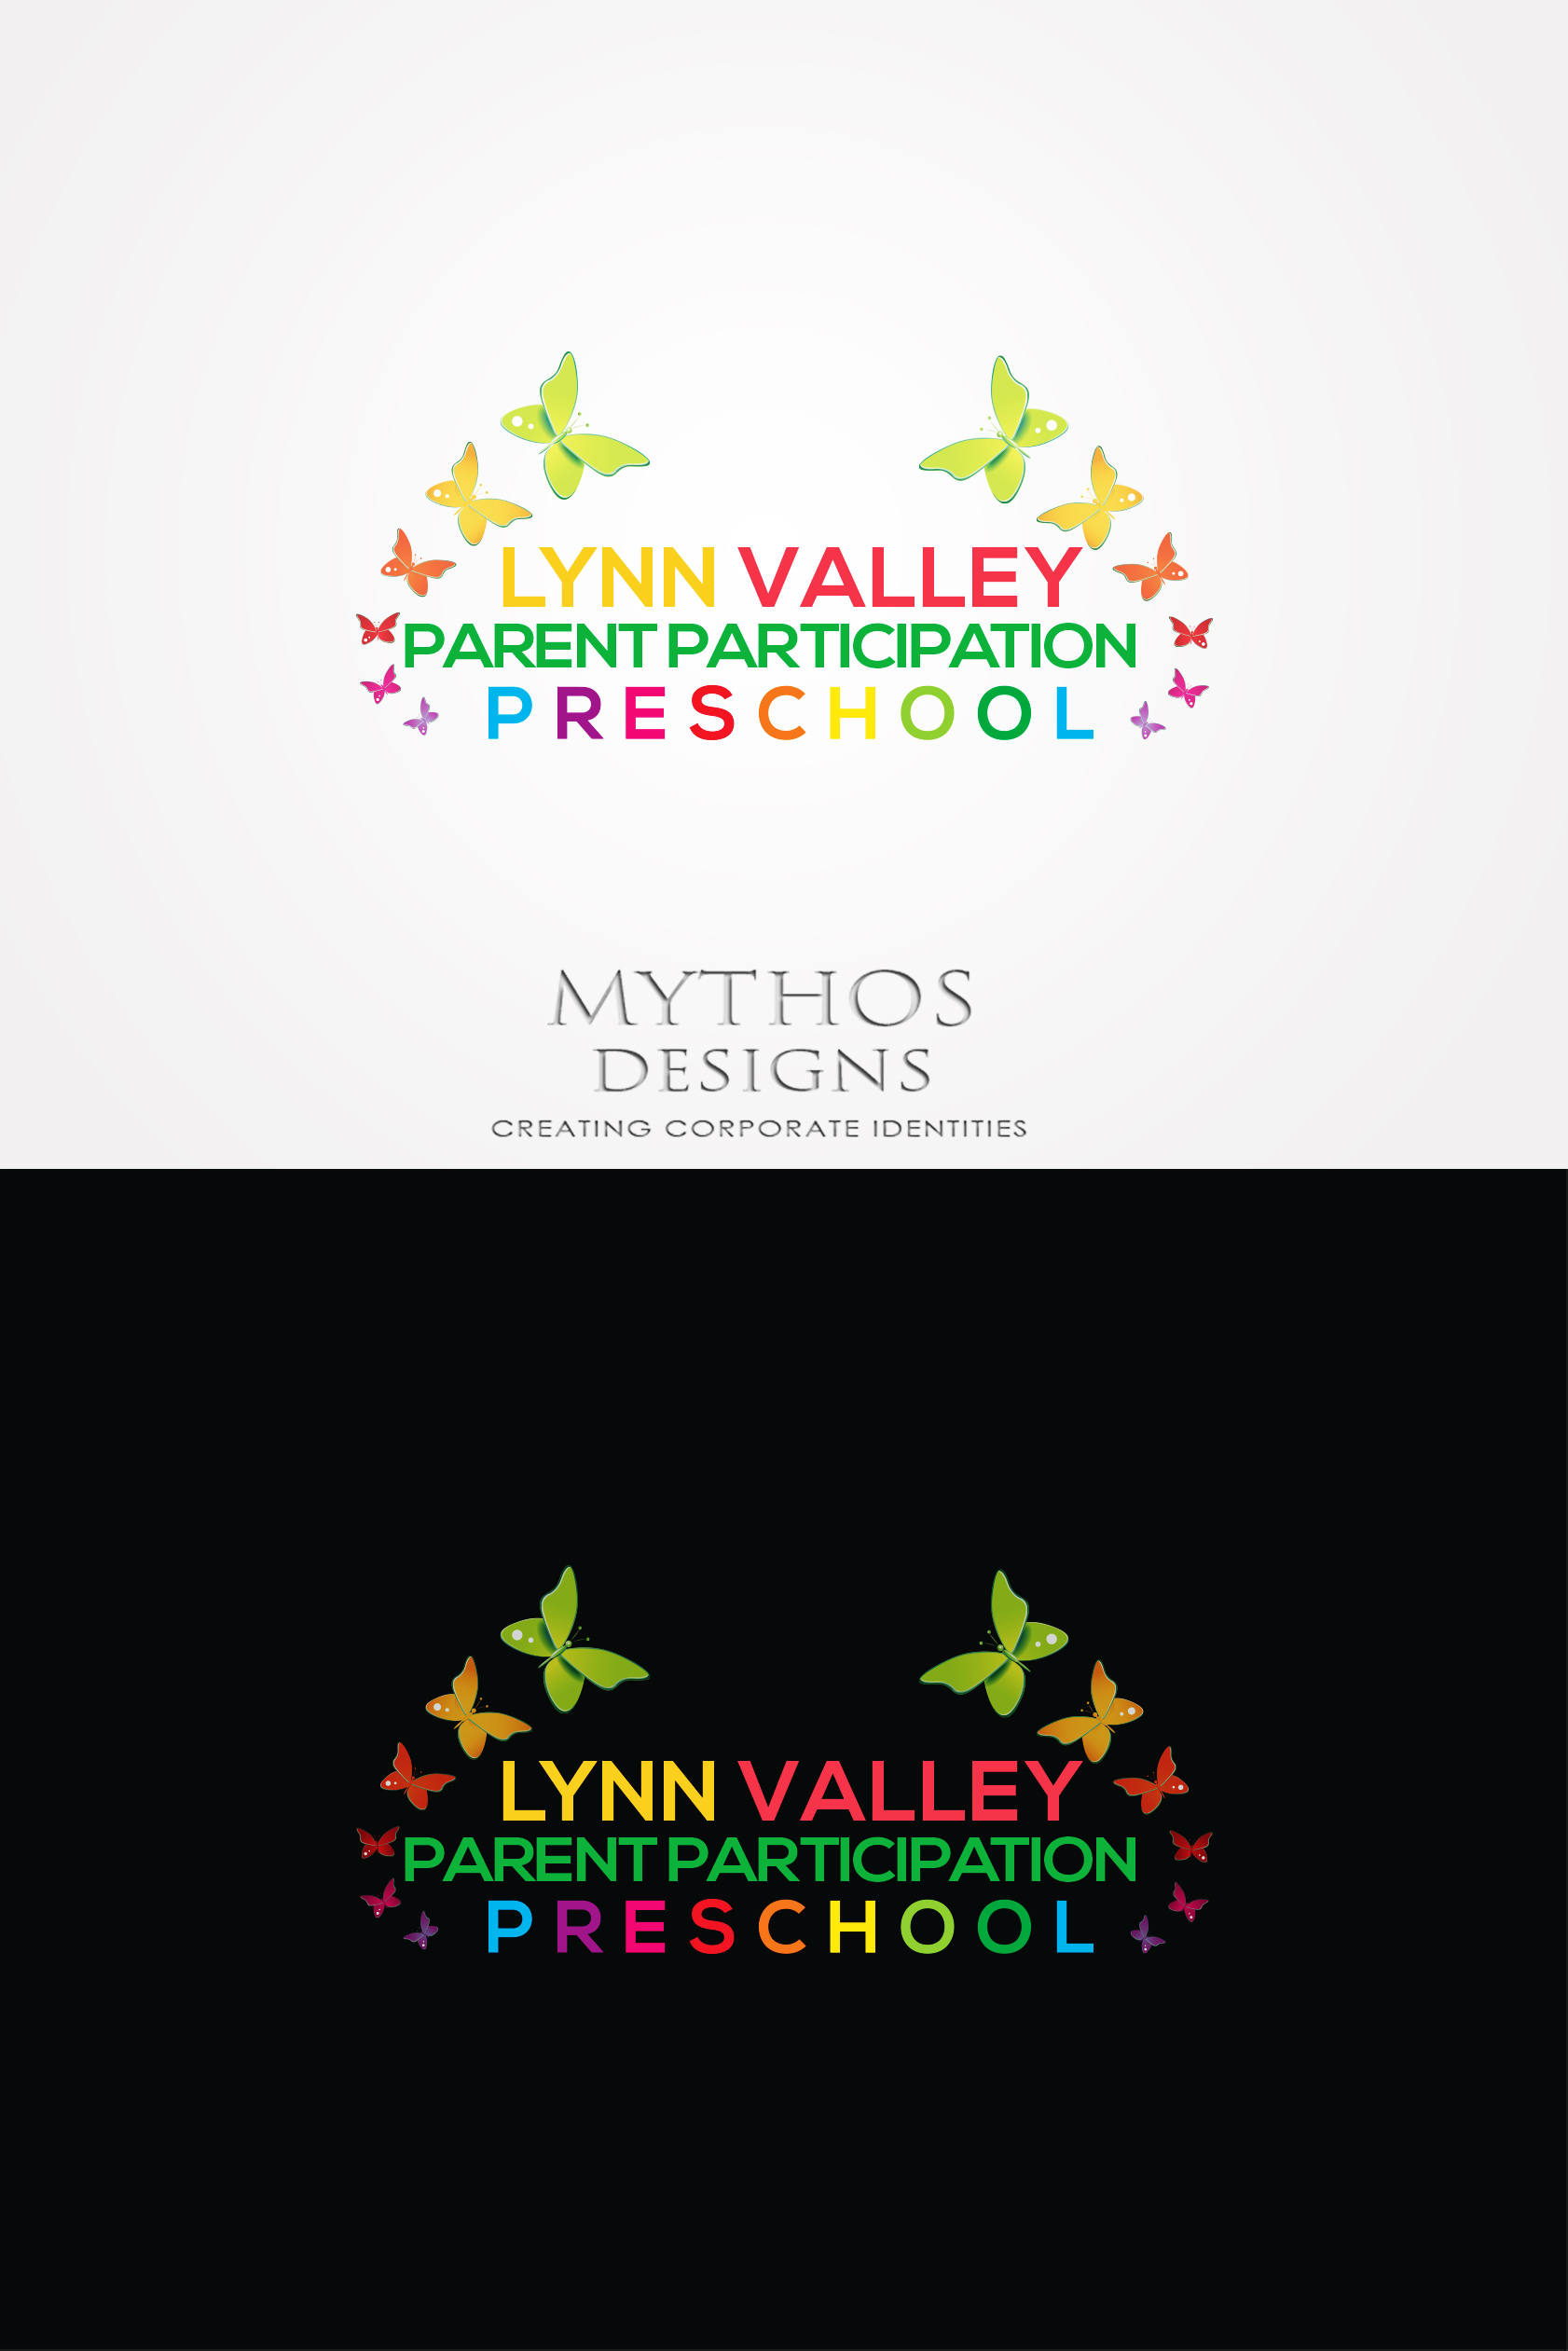 Logo Design by Mythos Designs - Entry No. 57 in the Logo Design Contest New Logo Design for Lynn Valley Parent Participation Preschool.